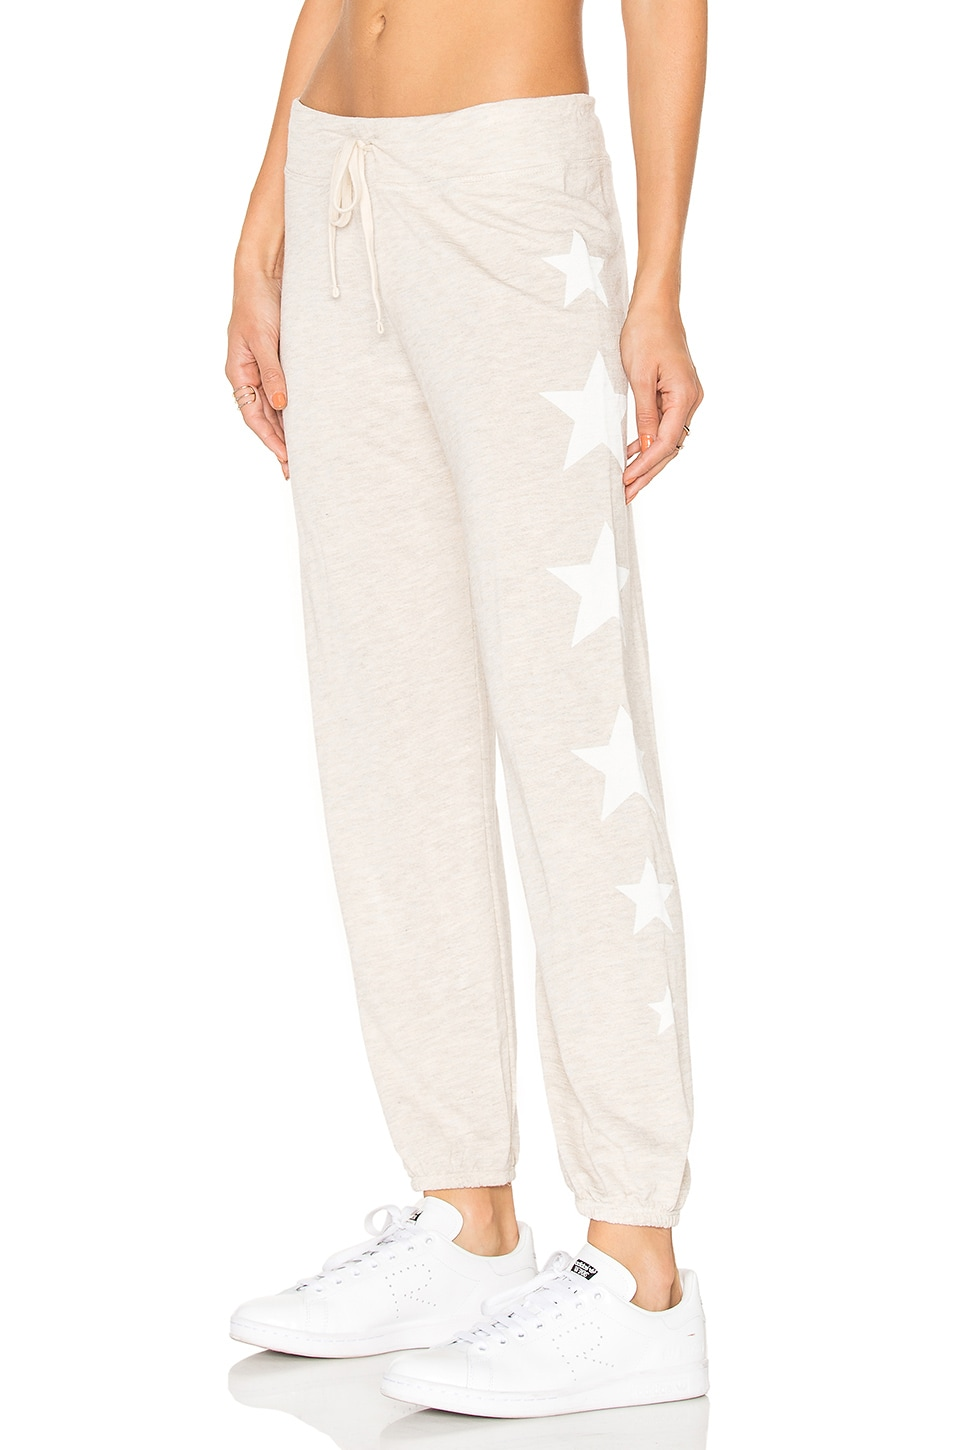 SUNDRY Side Stars Classic Sweatpants in Heather Oatmeal